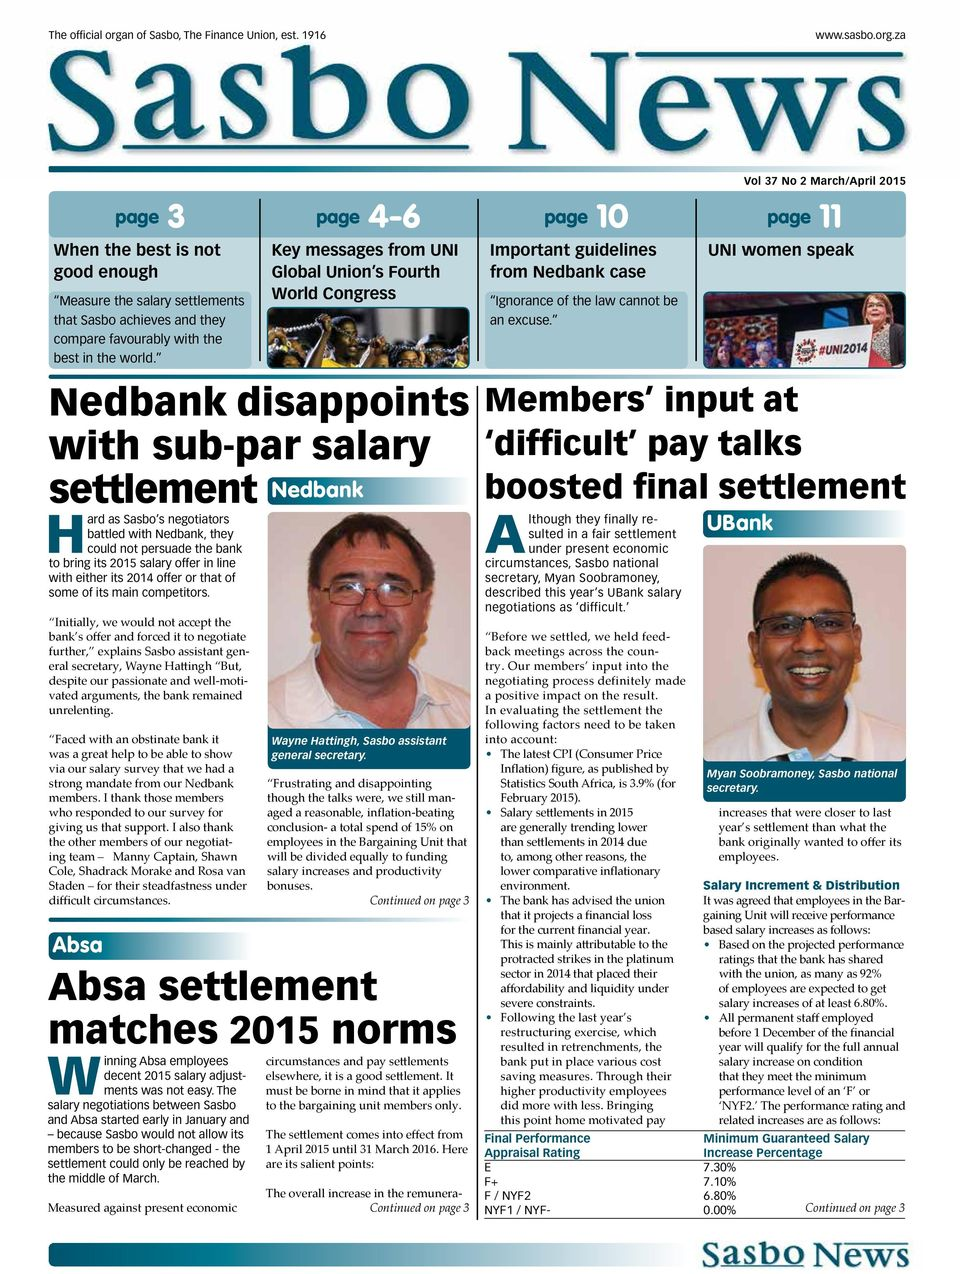 za Vol 37 No 2 March/April 2015 page 3 page 4-6 page 10 page 11 When the best is not good enough Measure the salary settlements that Sasbo achieves and they compare favourably with the best in the